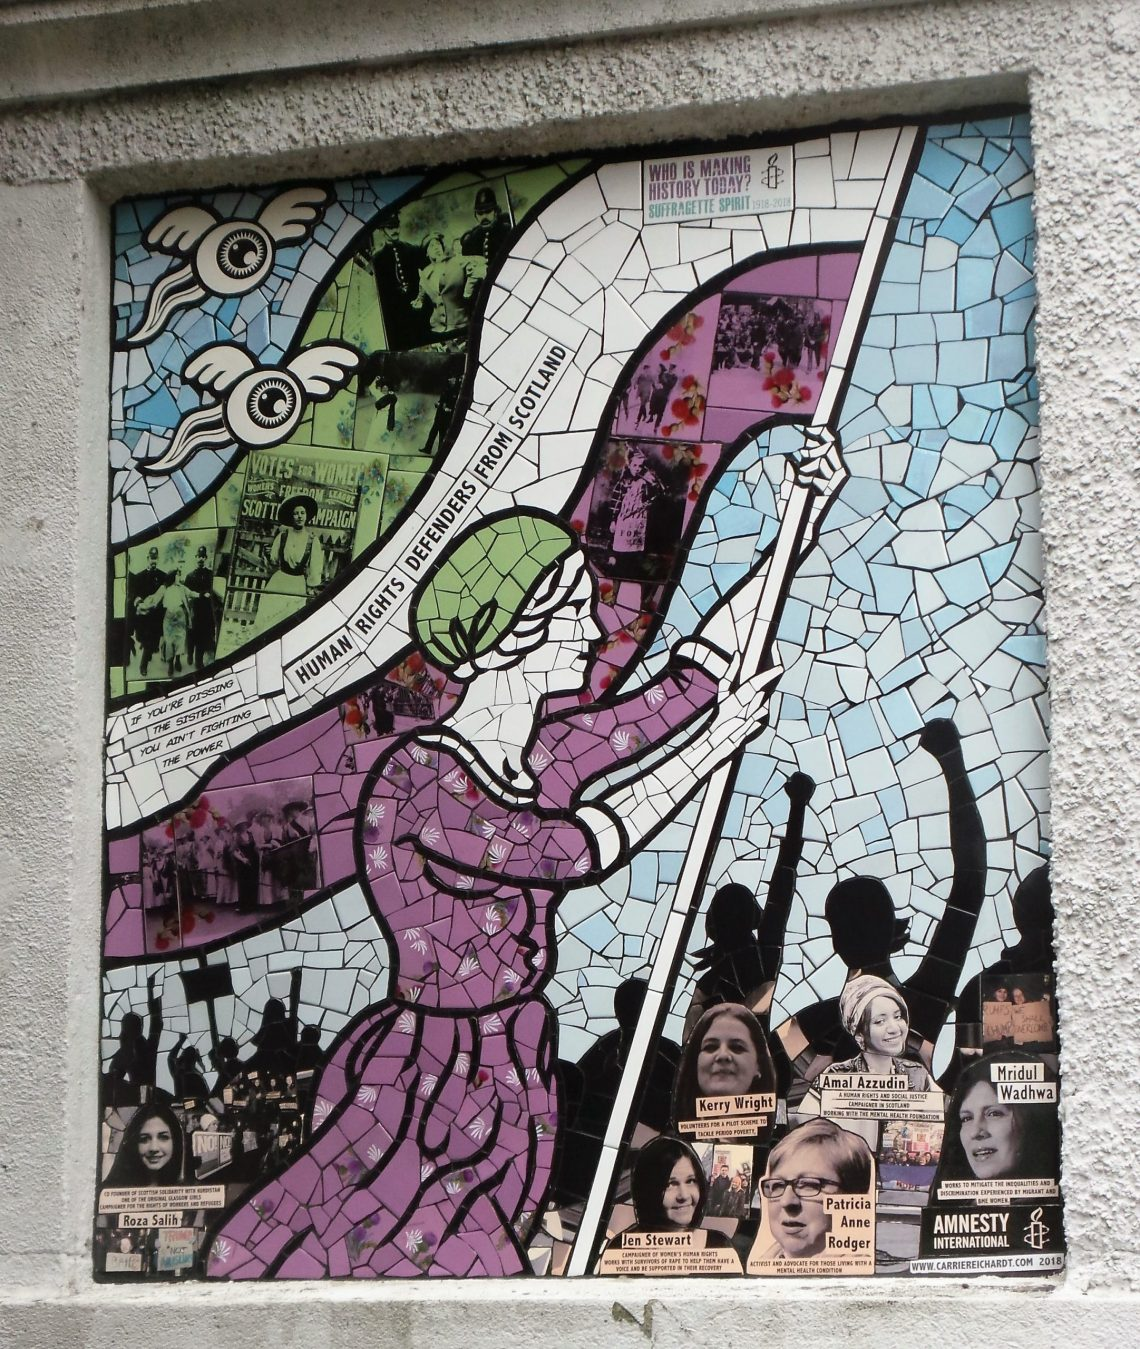 Suffragette Spirit mural by Carrie Reichardt in Aberdeen